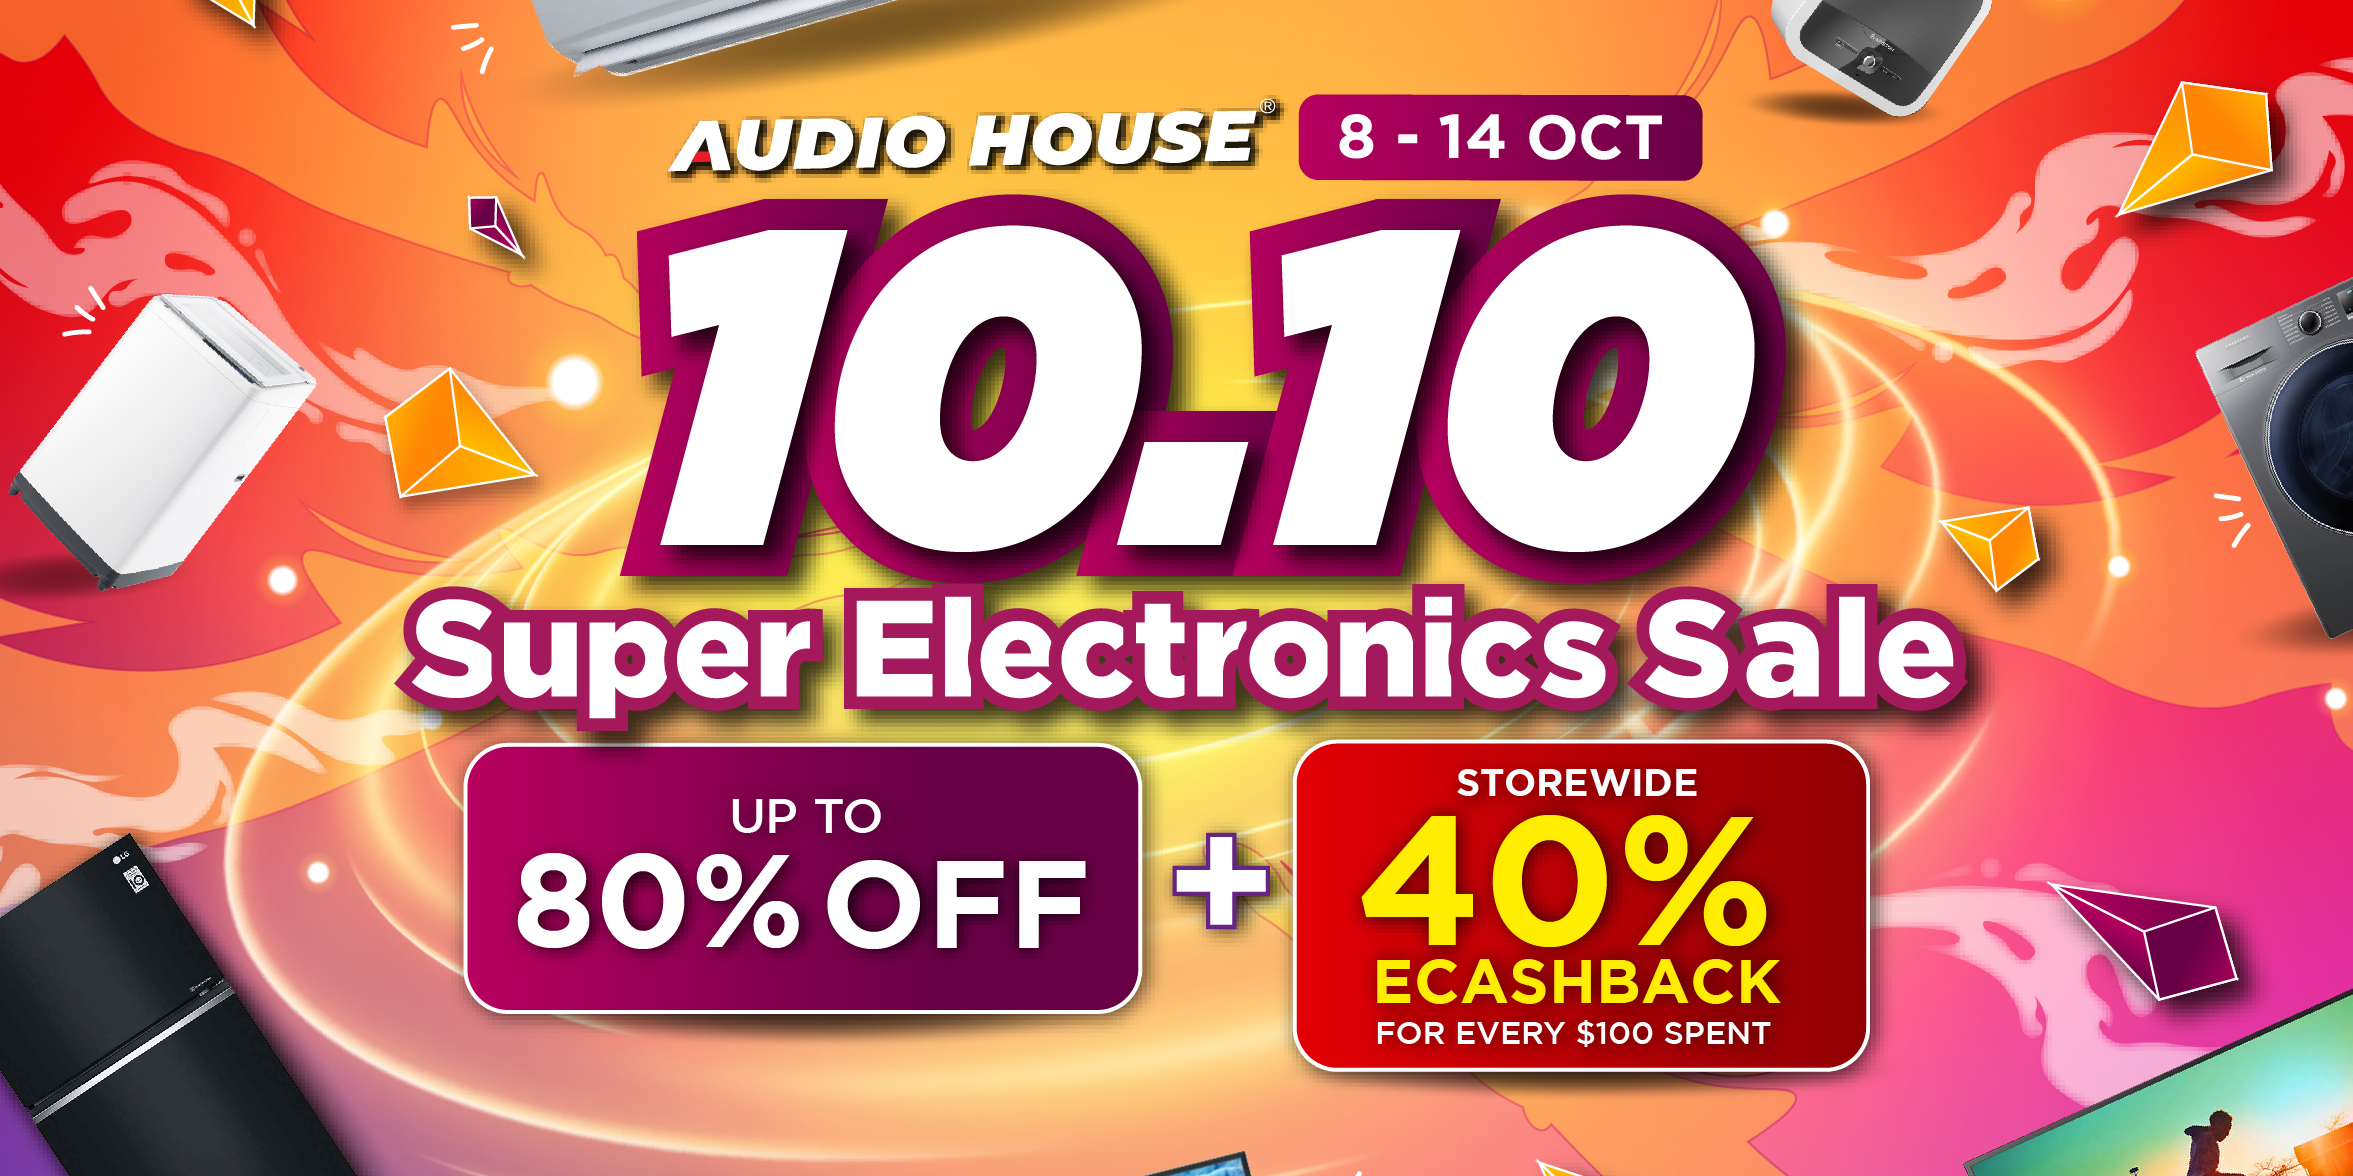 Audio House 10.10 Super Electronics Sale – Get Up to 80% OFF + Storewide 40% eCashback For Every $10